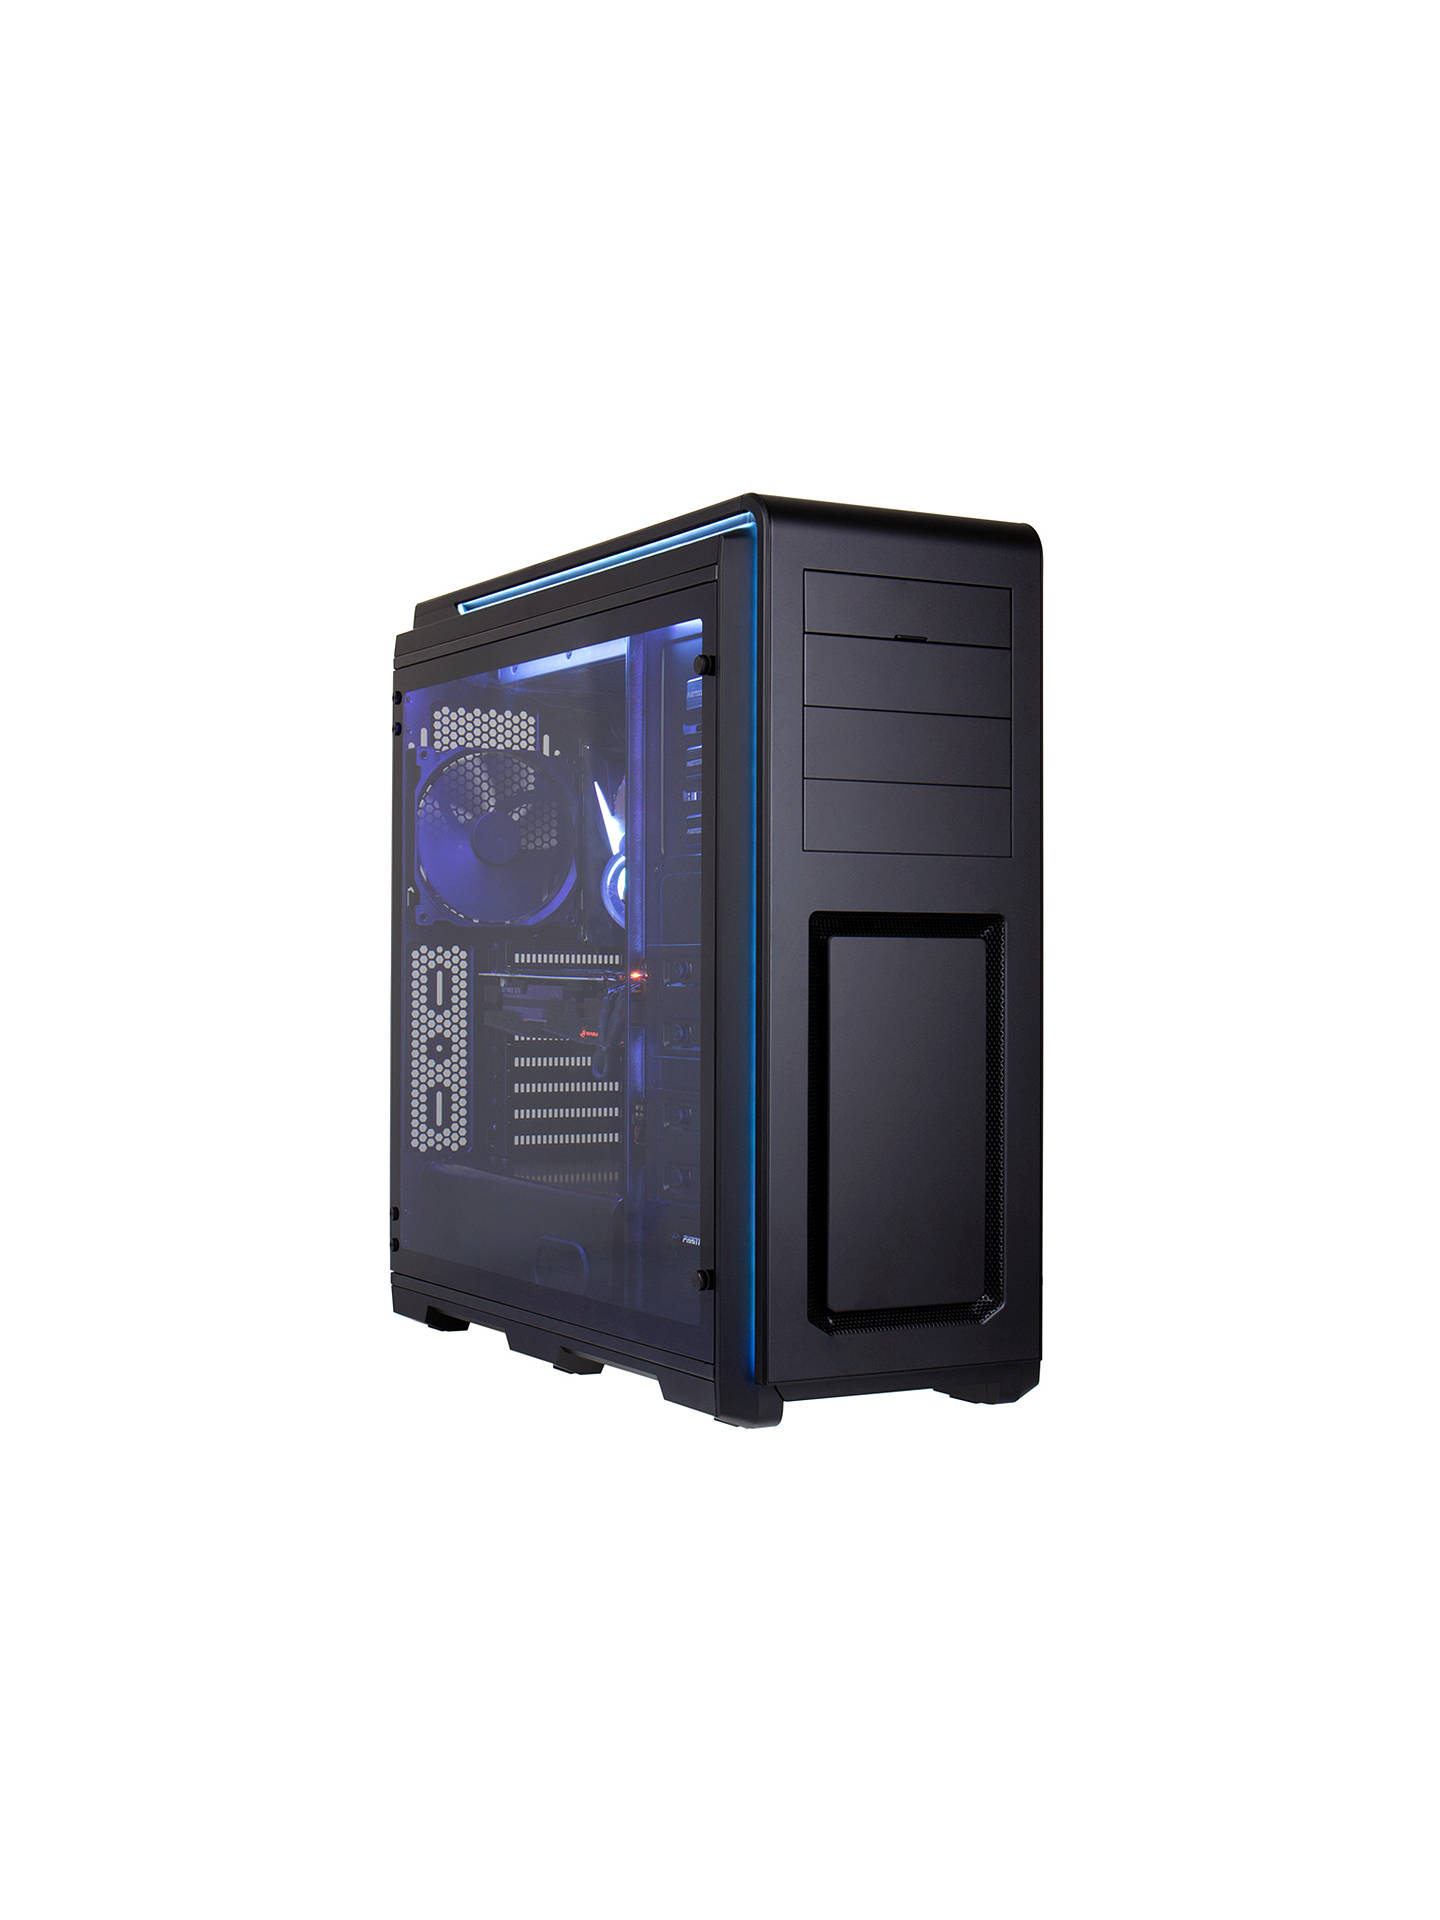 BuyOverclockers UK FS-1B1-OG Wraith, Custom Water-Cooled Gaming PC, Intel Core i7, 32 GB RAM, 2TB HDD + 480GB SSD, GeForce GTX 1080Ti, Black Online at johnlewis.com